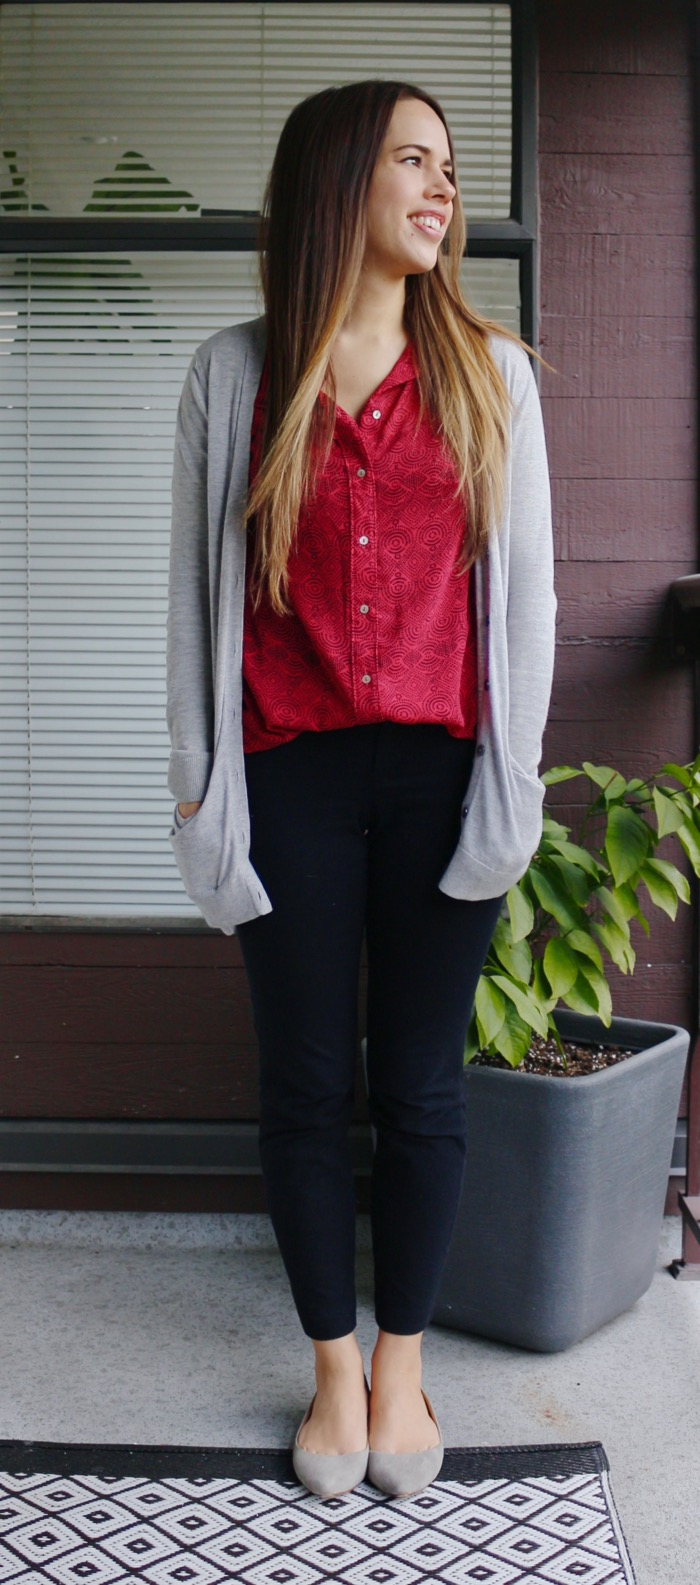 Jules in Flats - Red Blouse & Cardigan for Work